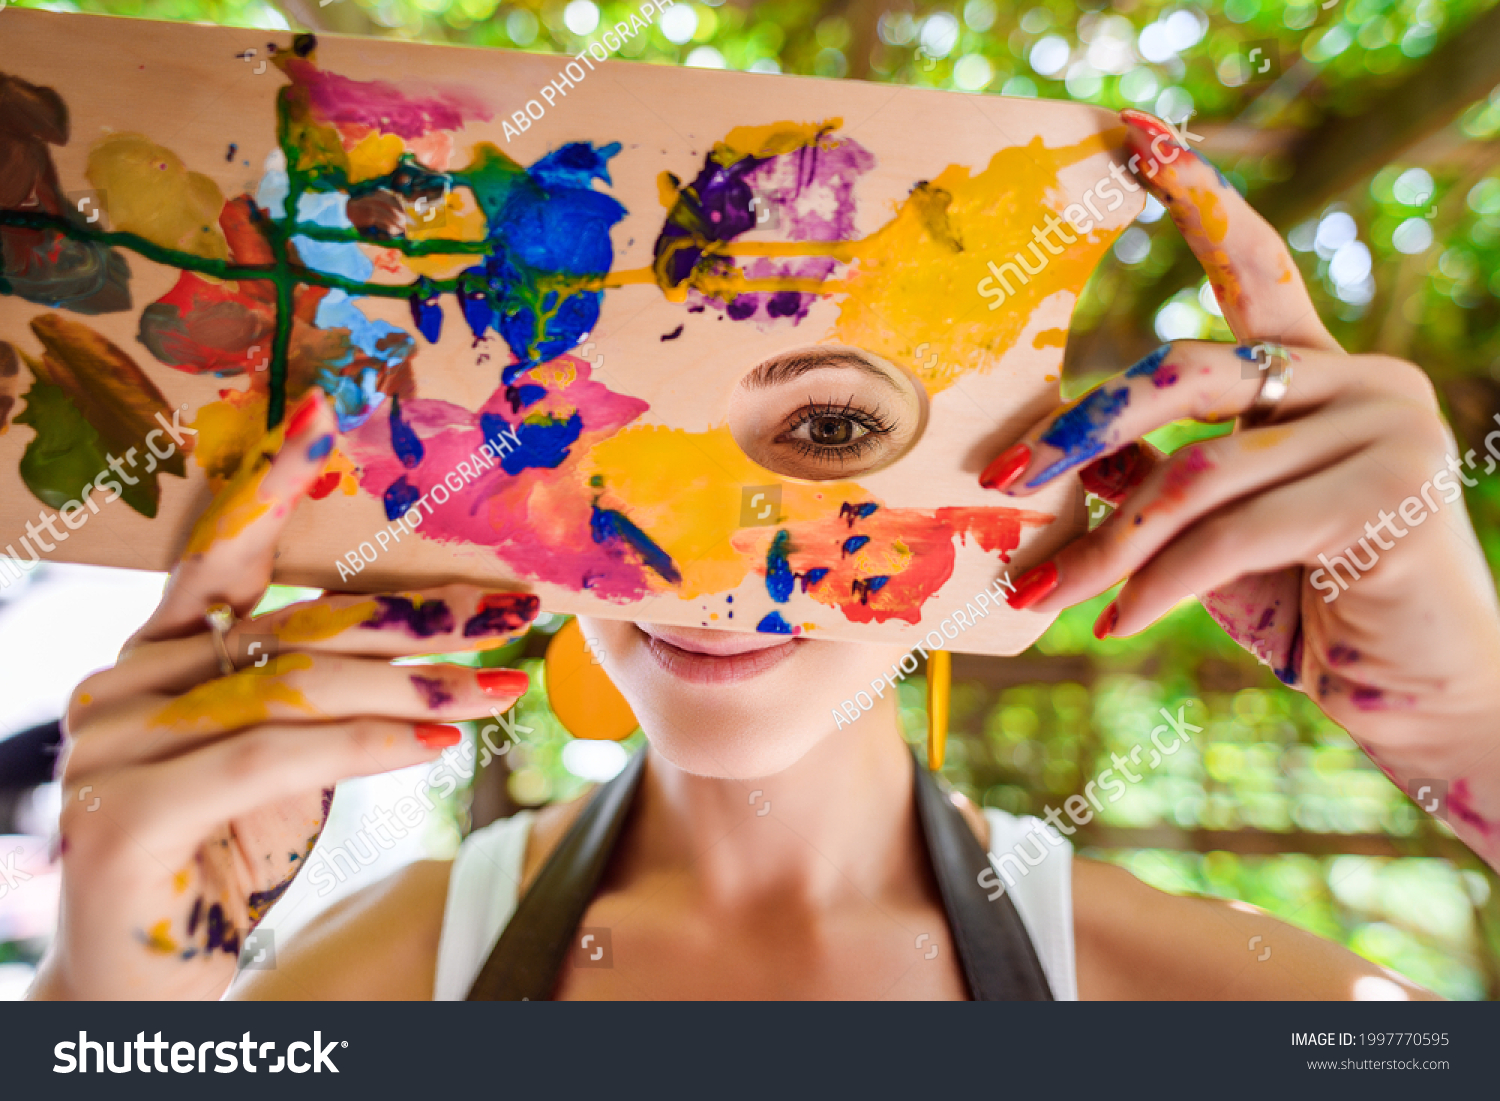 Playful portrait of a young gorgeous female artist painter covered in paint, looking and smiling at camera through her painter's palette. Creativity and individuality concept. #1997770595